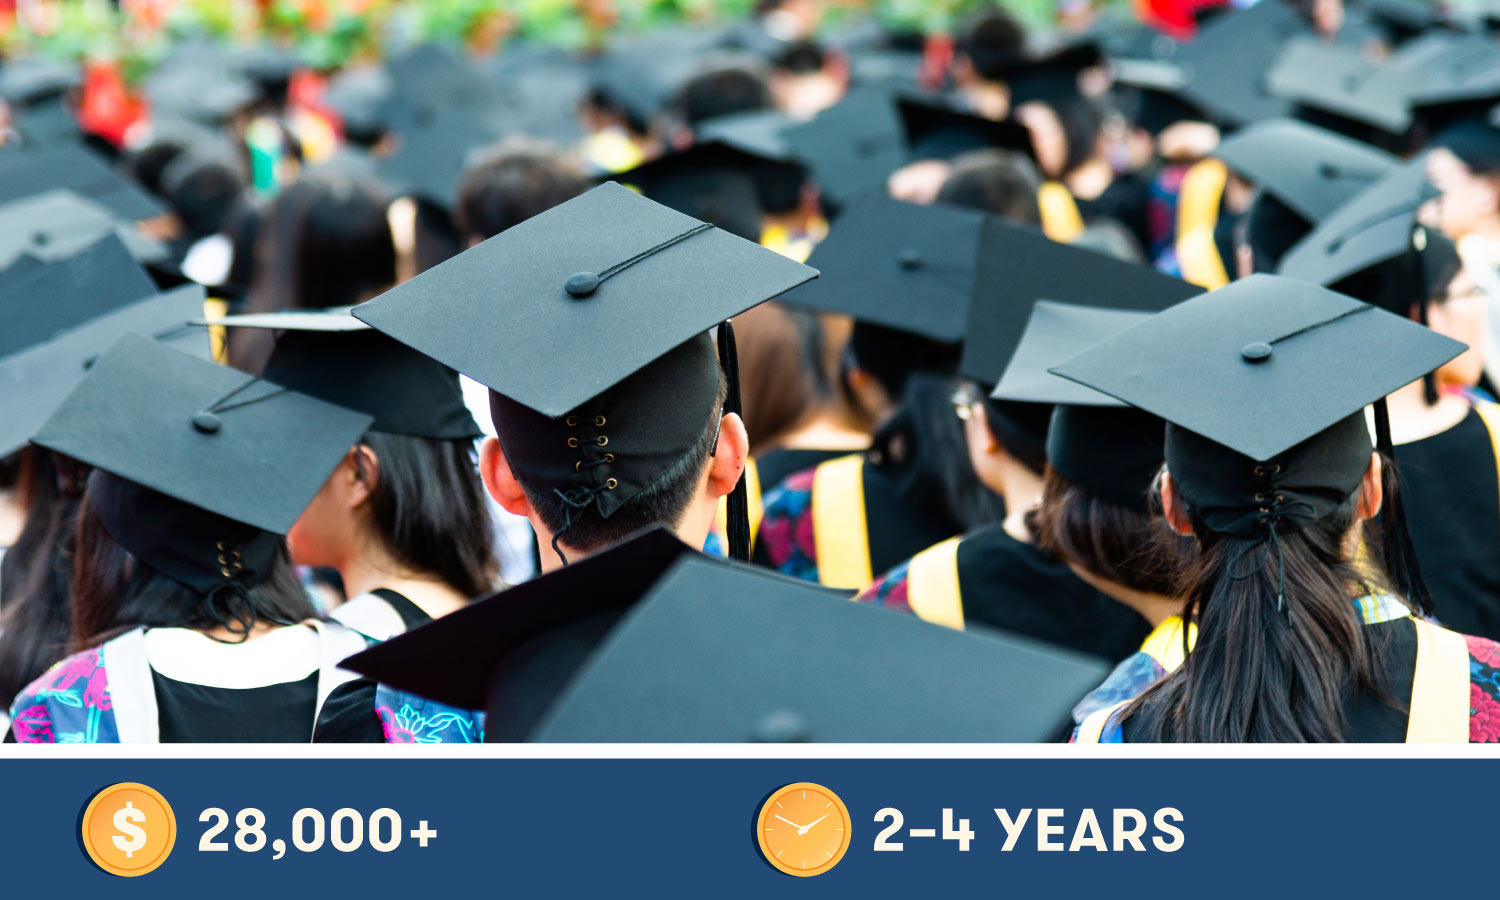 Associate and Bachelor's Degree can cost $28,000+ and take 2-4 years